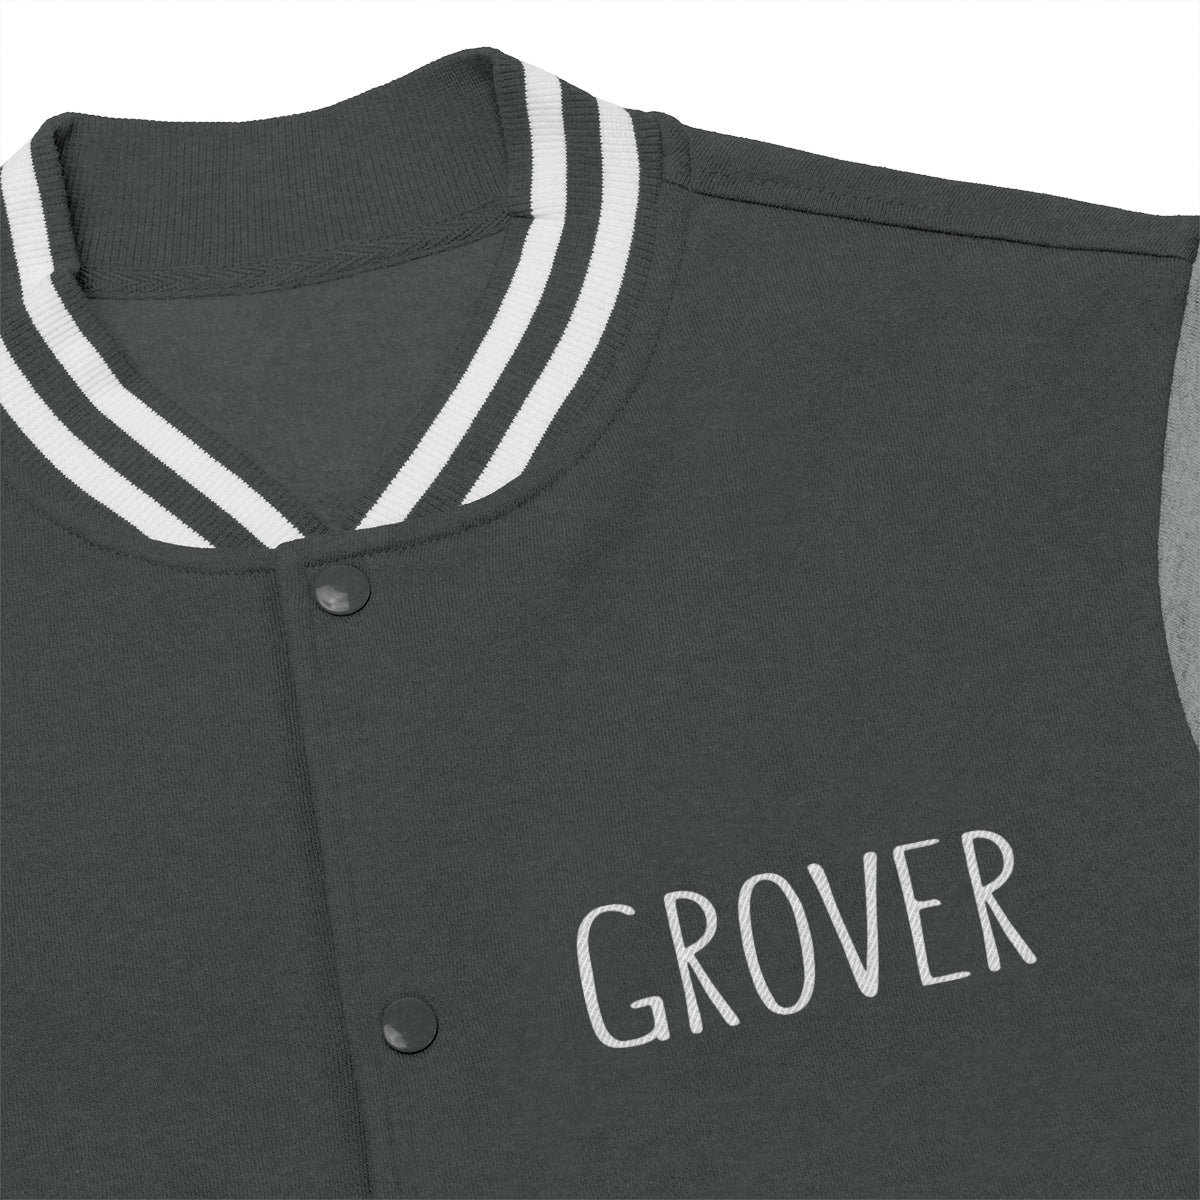 Grover Embroidered Men's Jacket: multiple colors